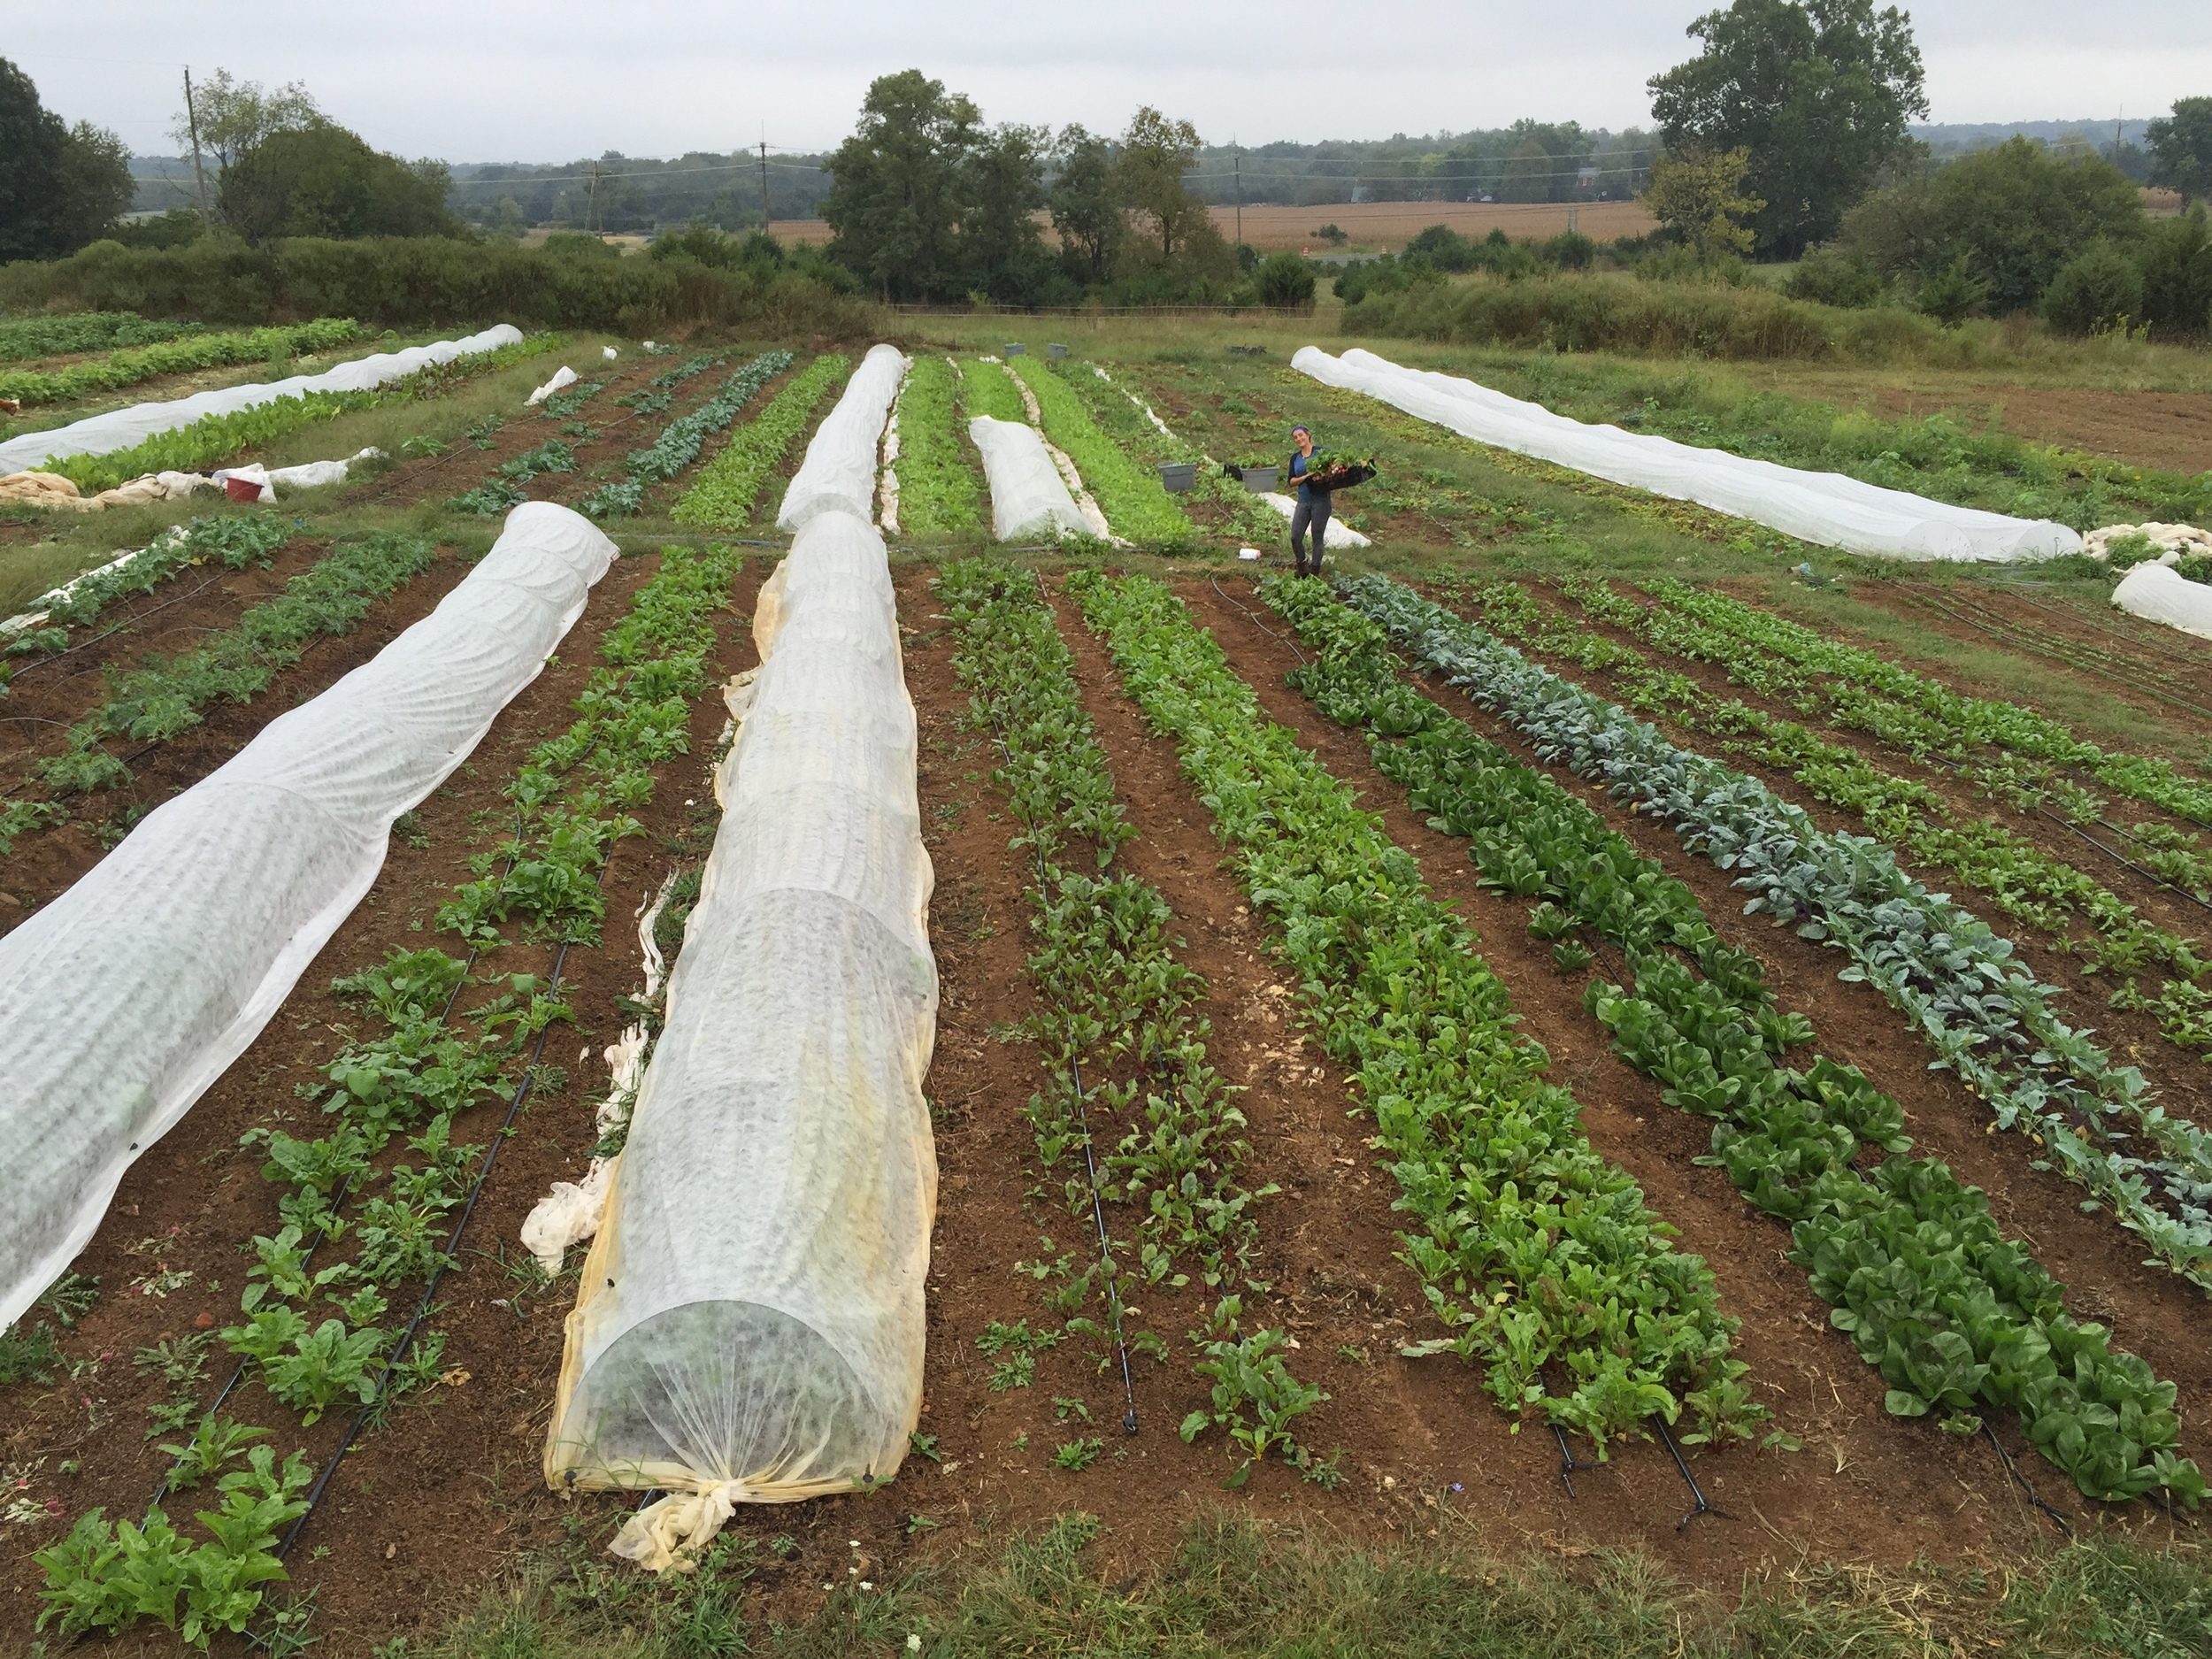 Now we grow intensively on two+ acres and have a flock of 300-600 chickens. We attend four farmers markets and have a 50 member CSA program.